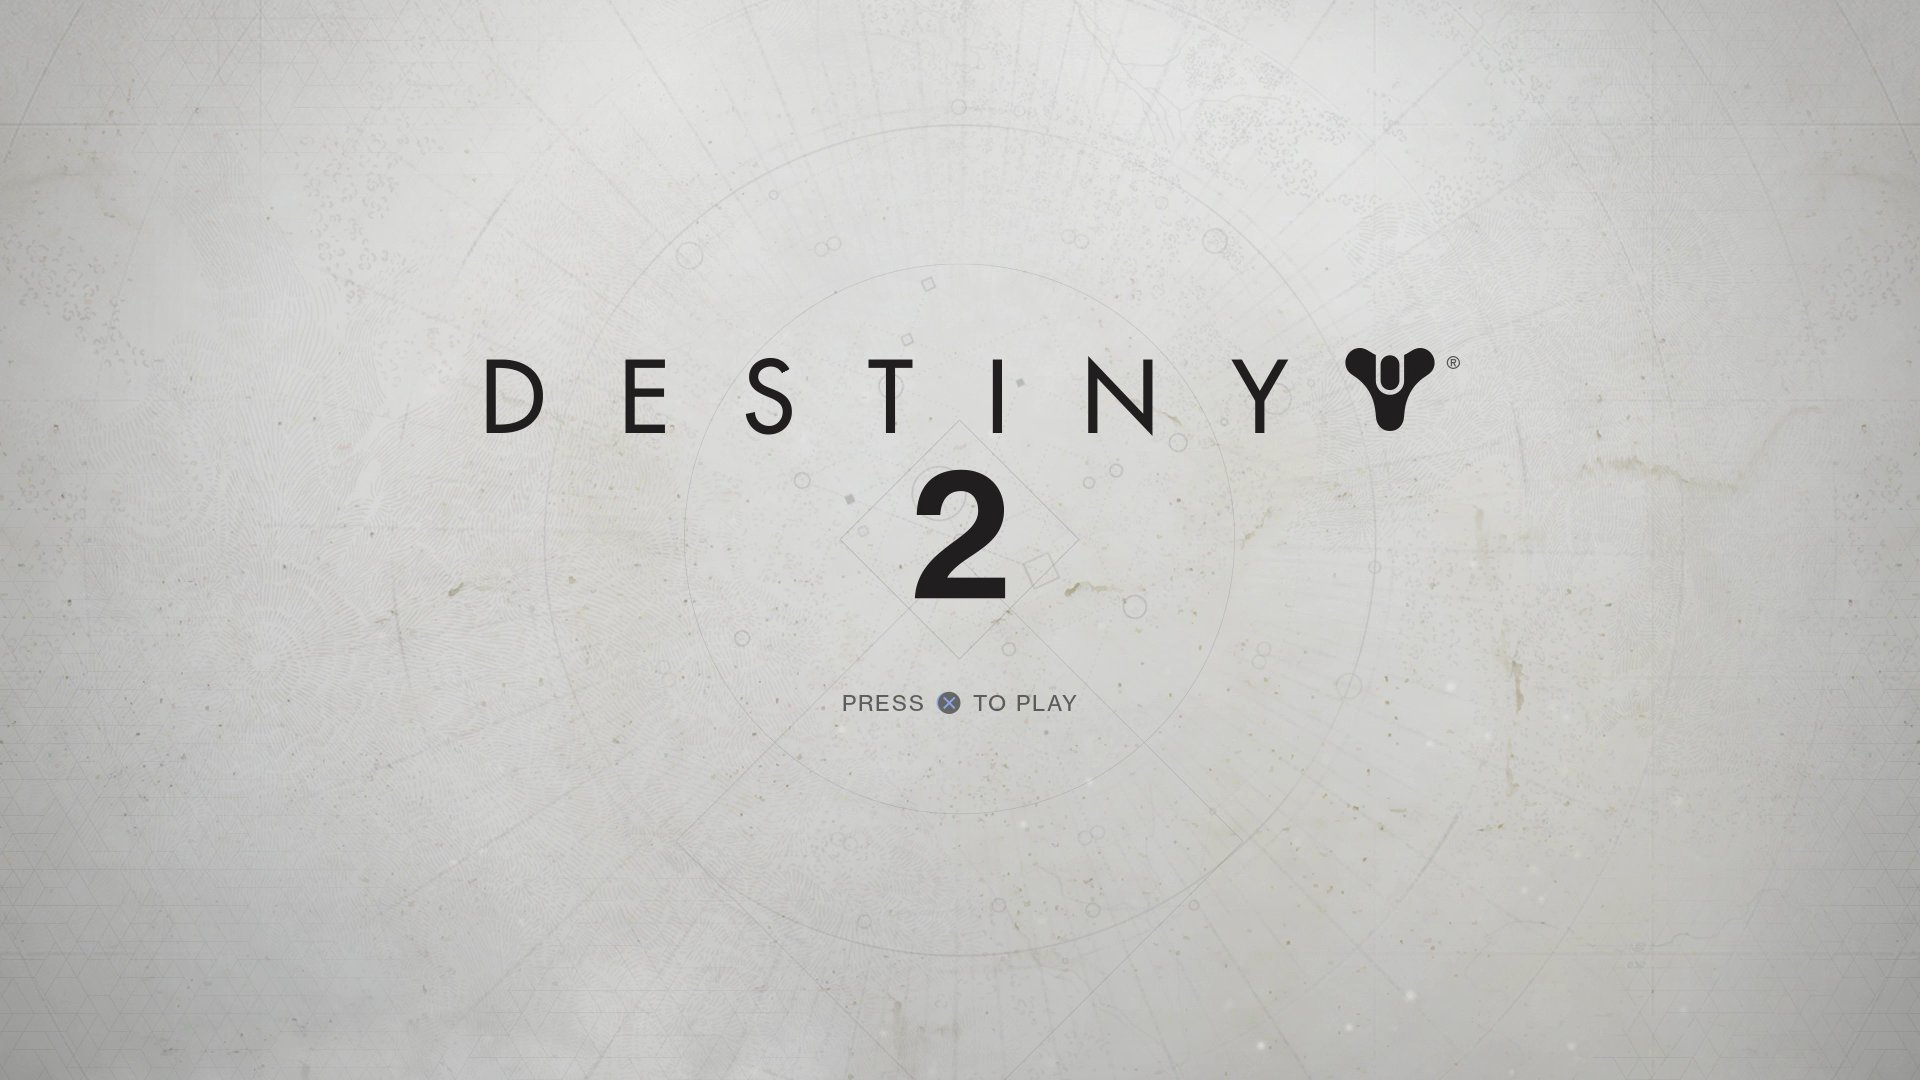 Destiny 2 Beta: Current Bugs and Issues